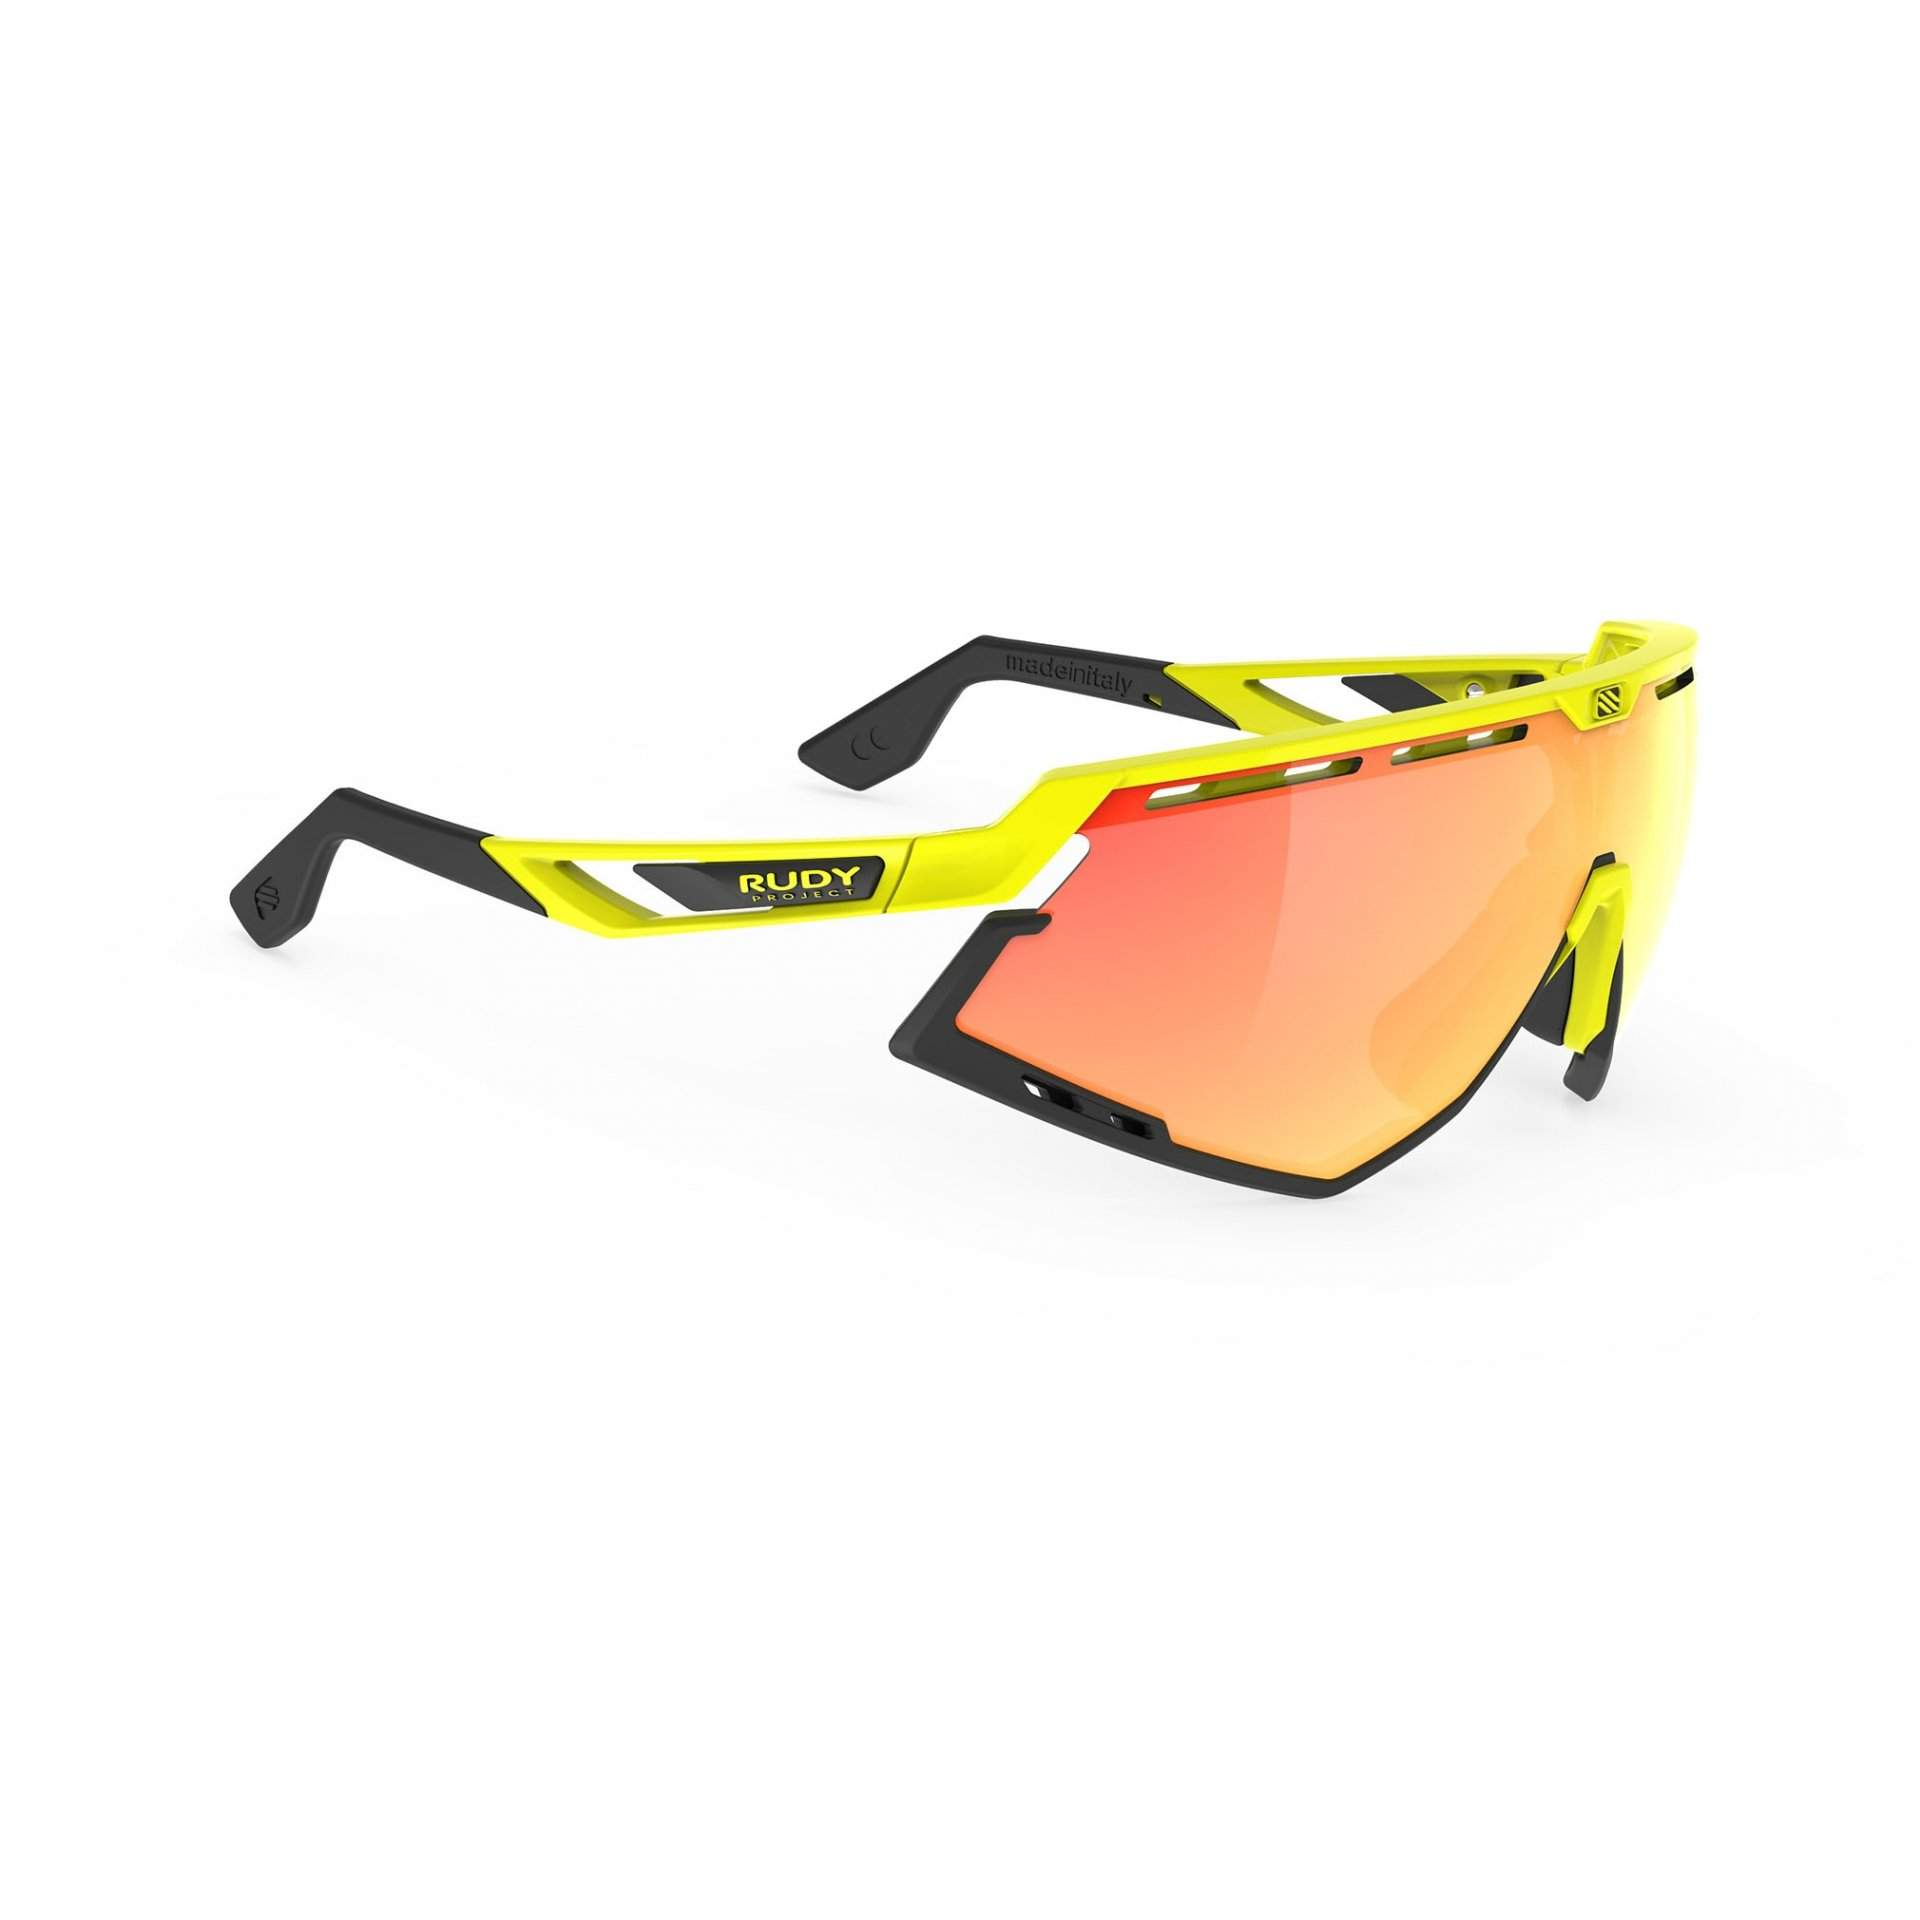 OKULARY RUDY PROJECT DEFENDER MULTILASER ORANGE + YELLOW FLUO GLOSS BUMPERS BLACK SP5240760000